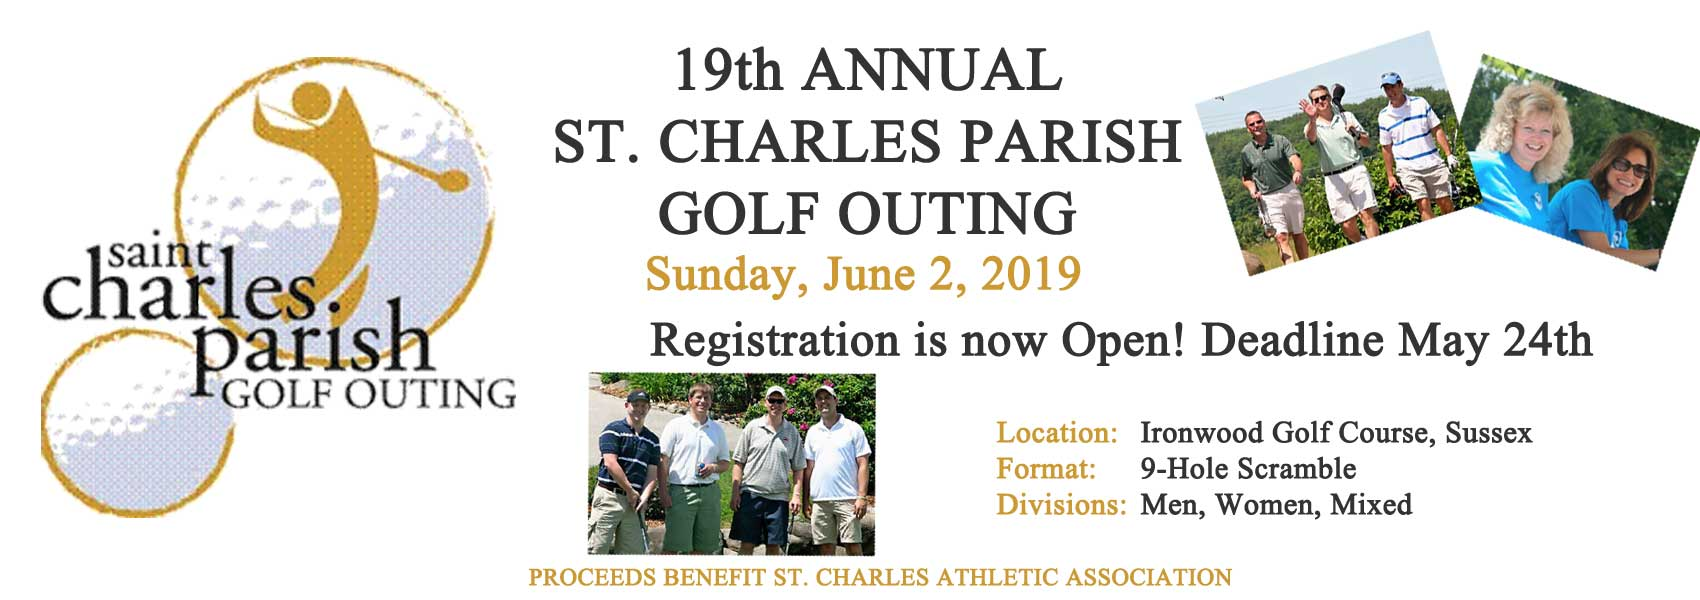 2019 St. Charles Golf Outing - 19th Annual Outing at Ironwood Golf Course